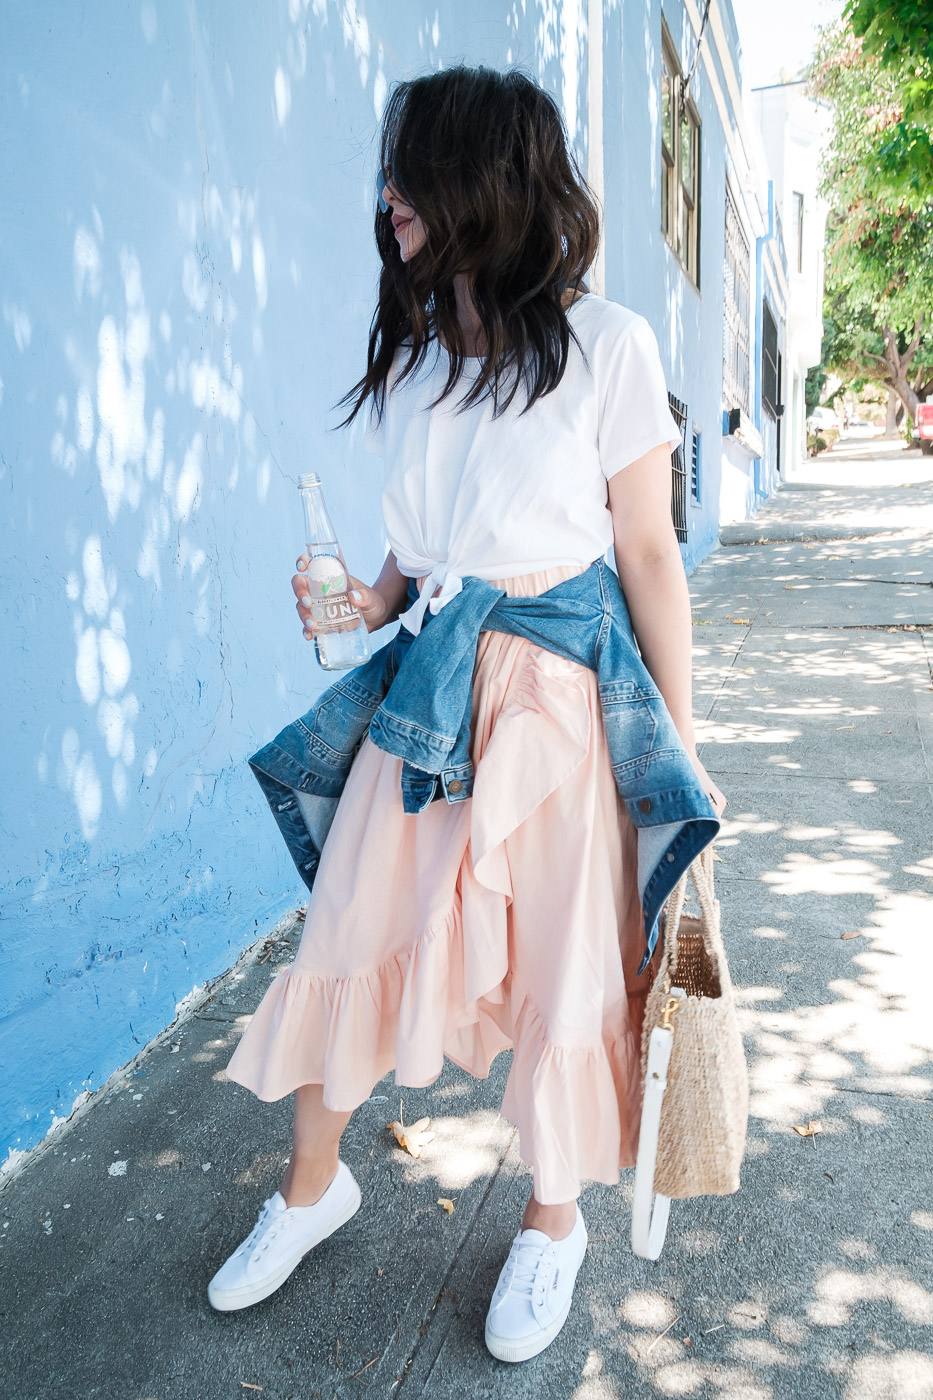 ruffle-skirt-outfit-summer-6